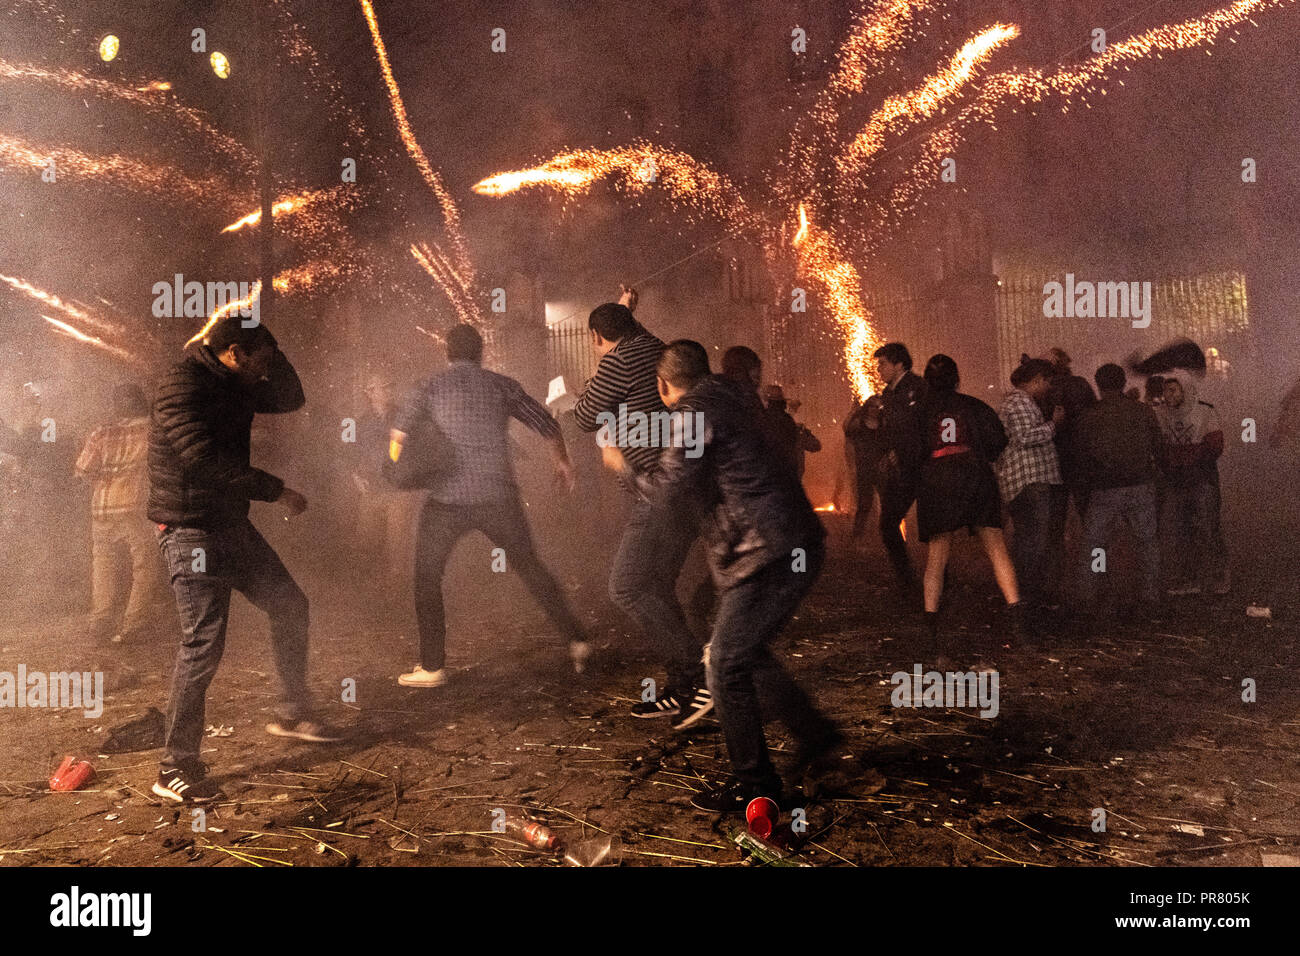 San Miguel de Allende, Mexico. 29th Sept 2018. Residents scramble as they are pelted by pyrotechnic rockets during the Alborada festival September 29, 2018 in San Miguel de Allende, Mexico. The unusual festival celebrates the cities patron saint with a two hour-long firework battle at 4am representing the struggle between Saint Michael and Lucifer. Credit: Planetpix/Alamy Live News - Stock Image